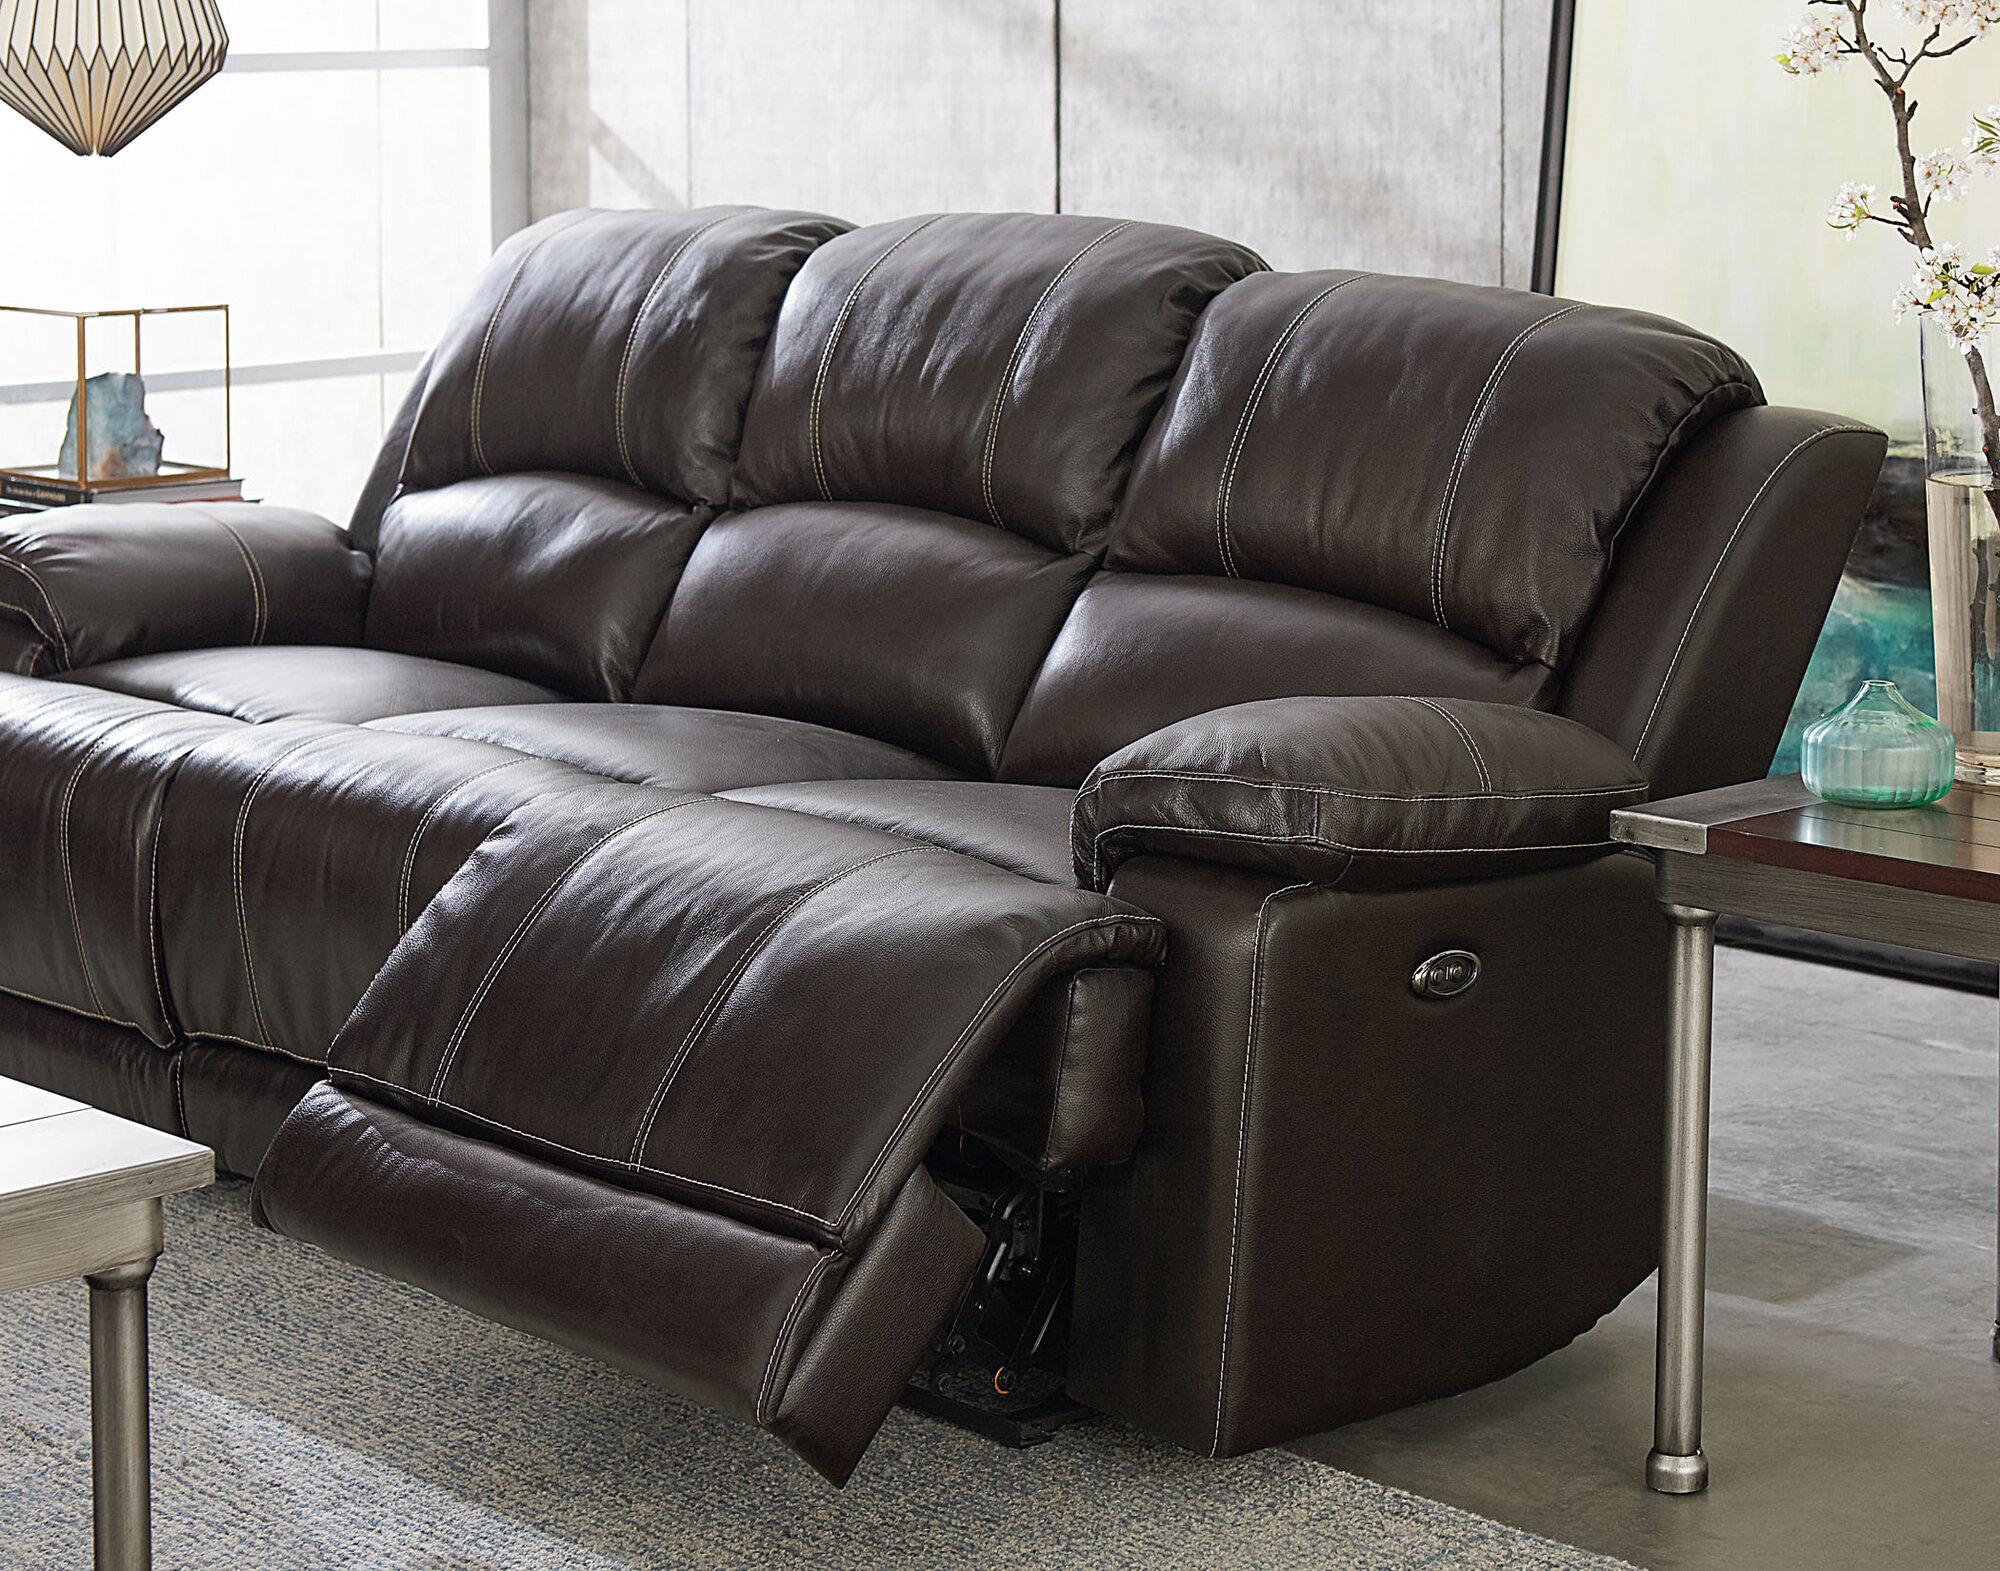 plough recliner reading reclining sofa leather corner the cozy with cadsden set at